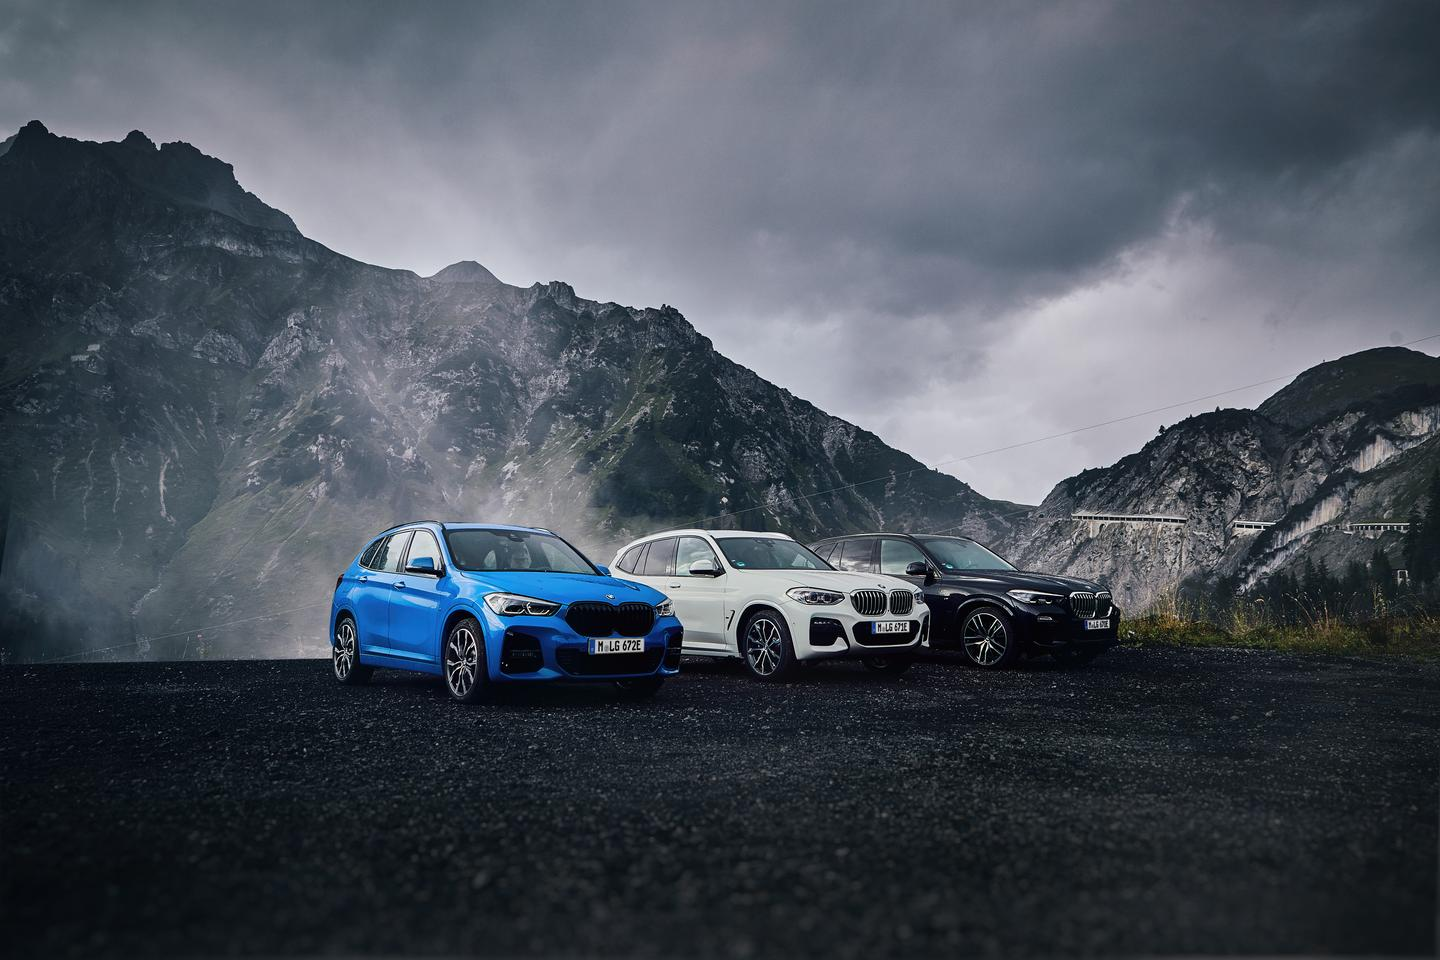 The full lineup of 2020 BMW X3 models, with the X3 Hybrid in white